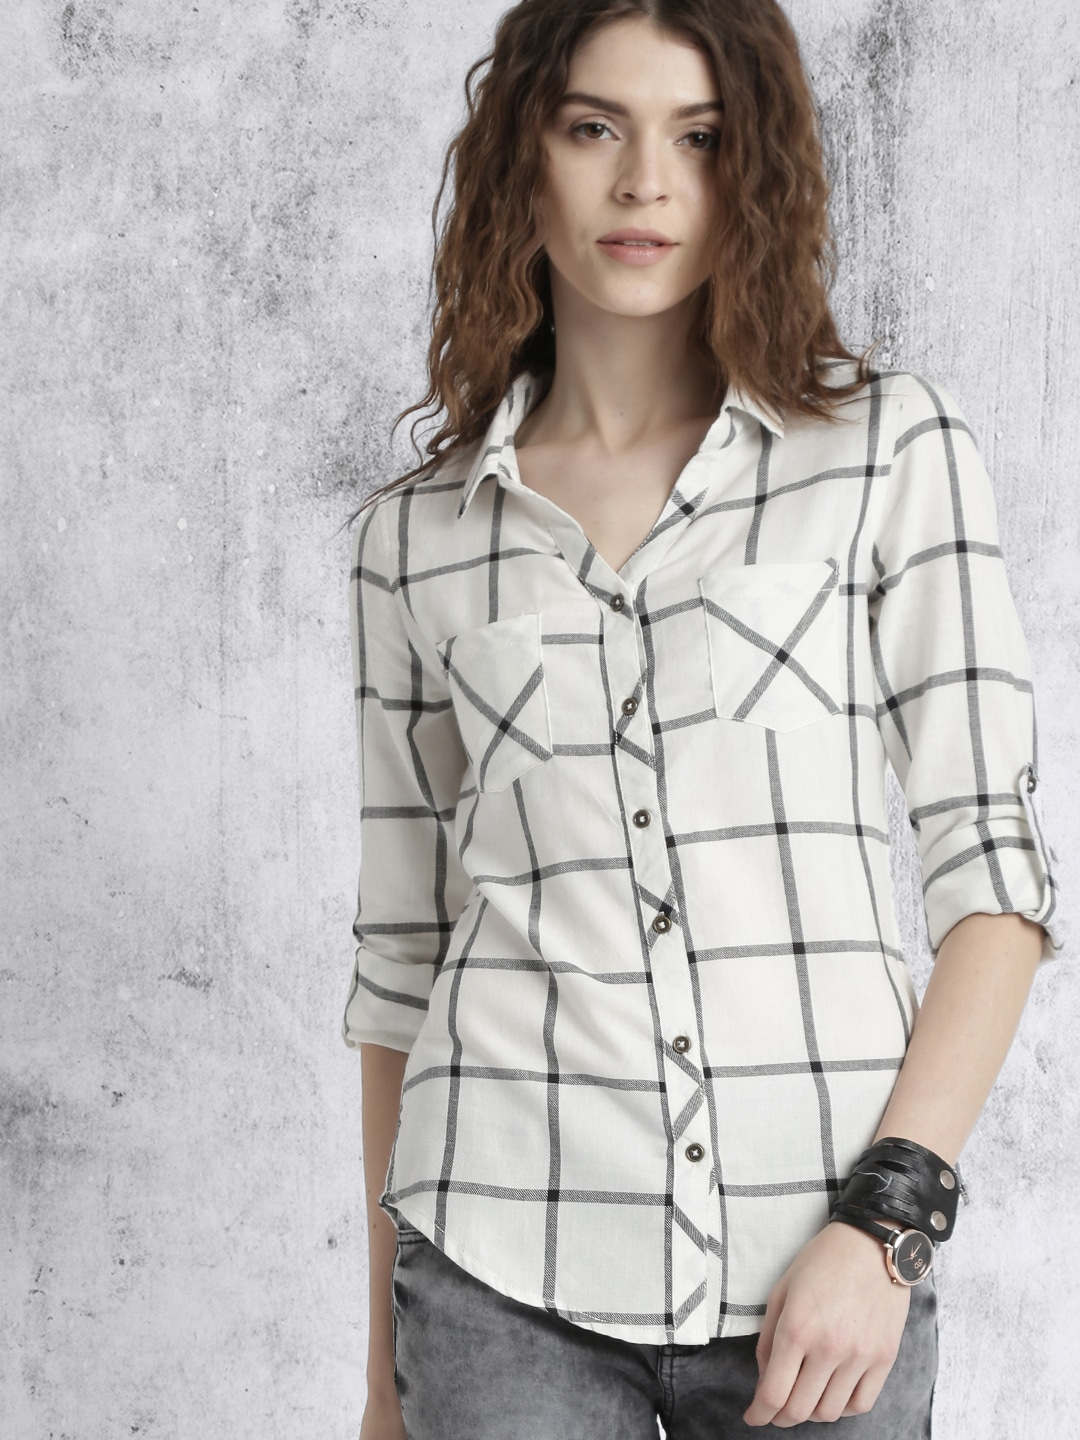 Shirt Casual for ladies 2019